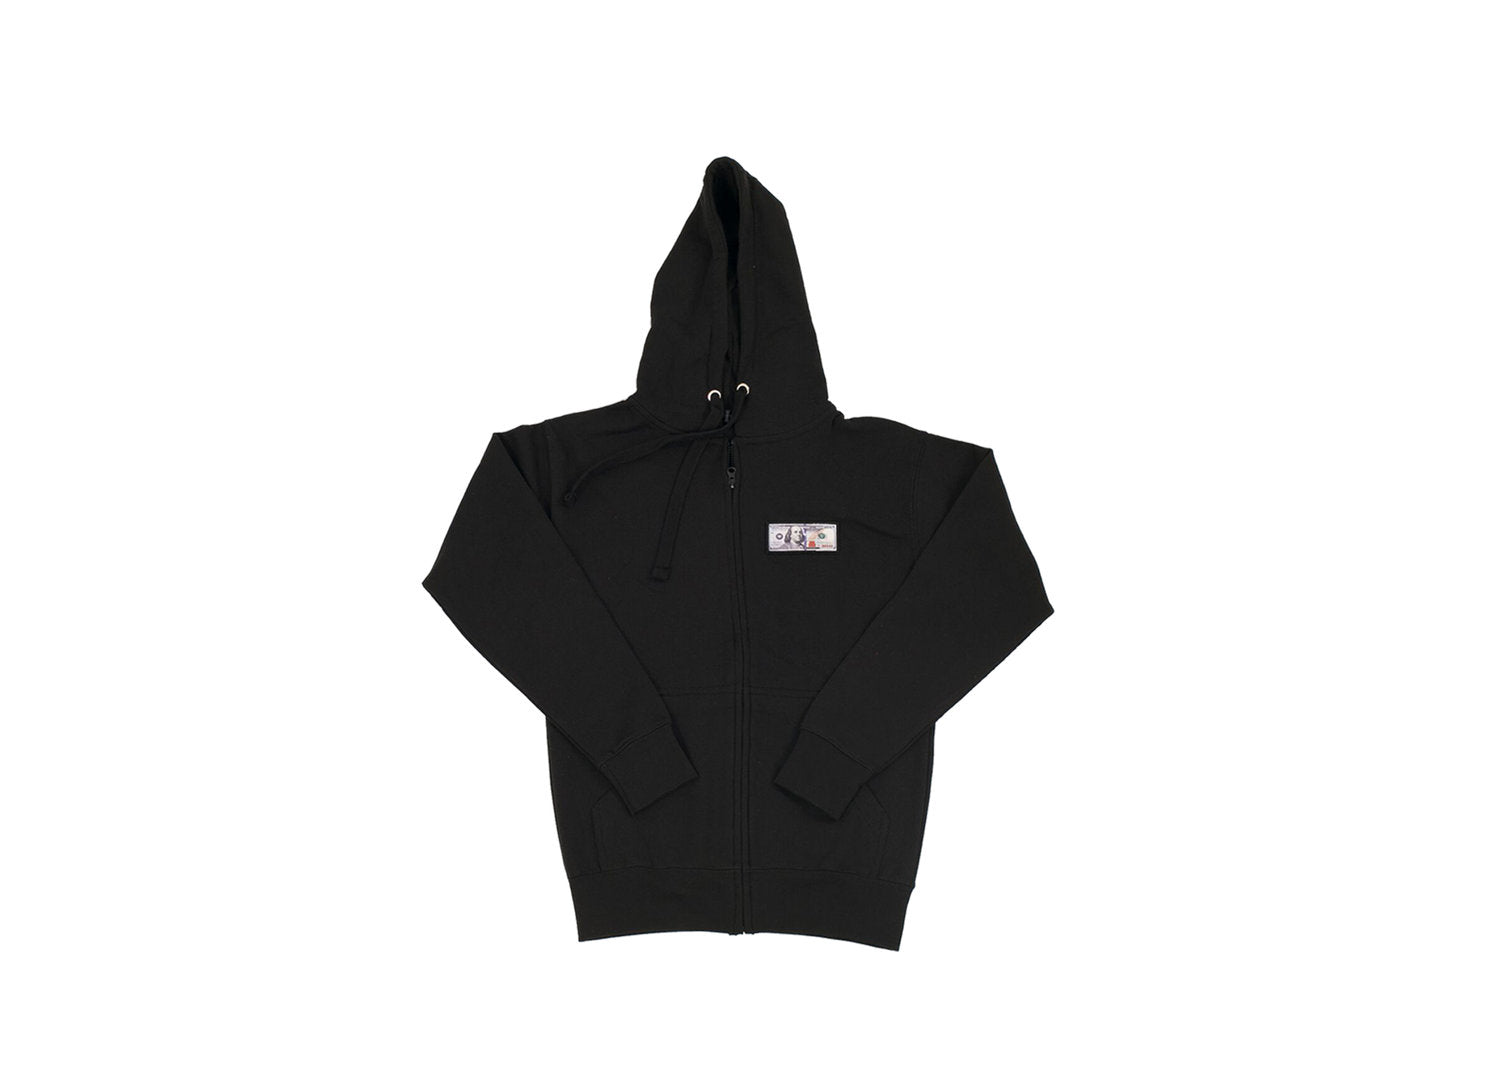 Black 'Blue Hundreds' Zip Up Hoodie by Twenty1Rich with a $100 logo